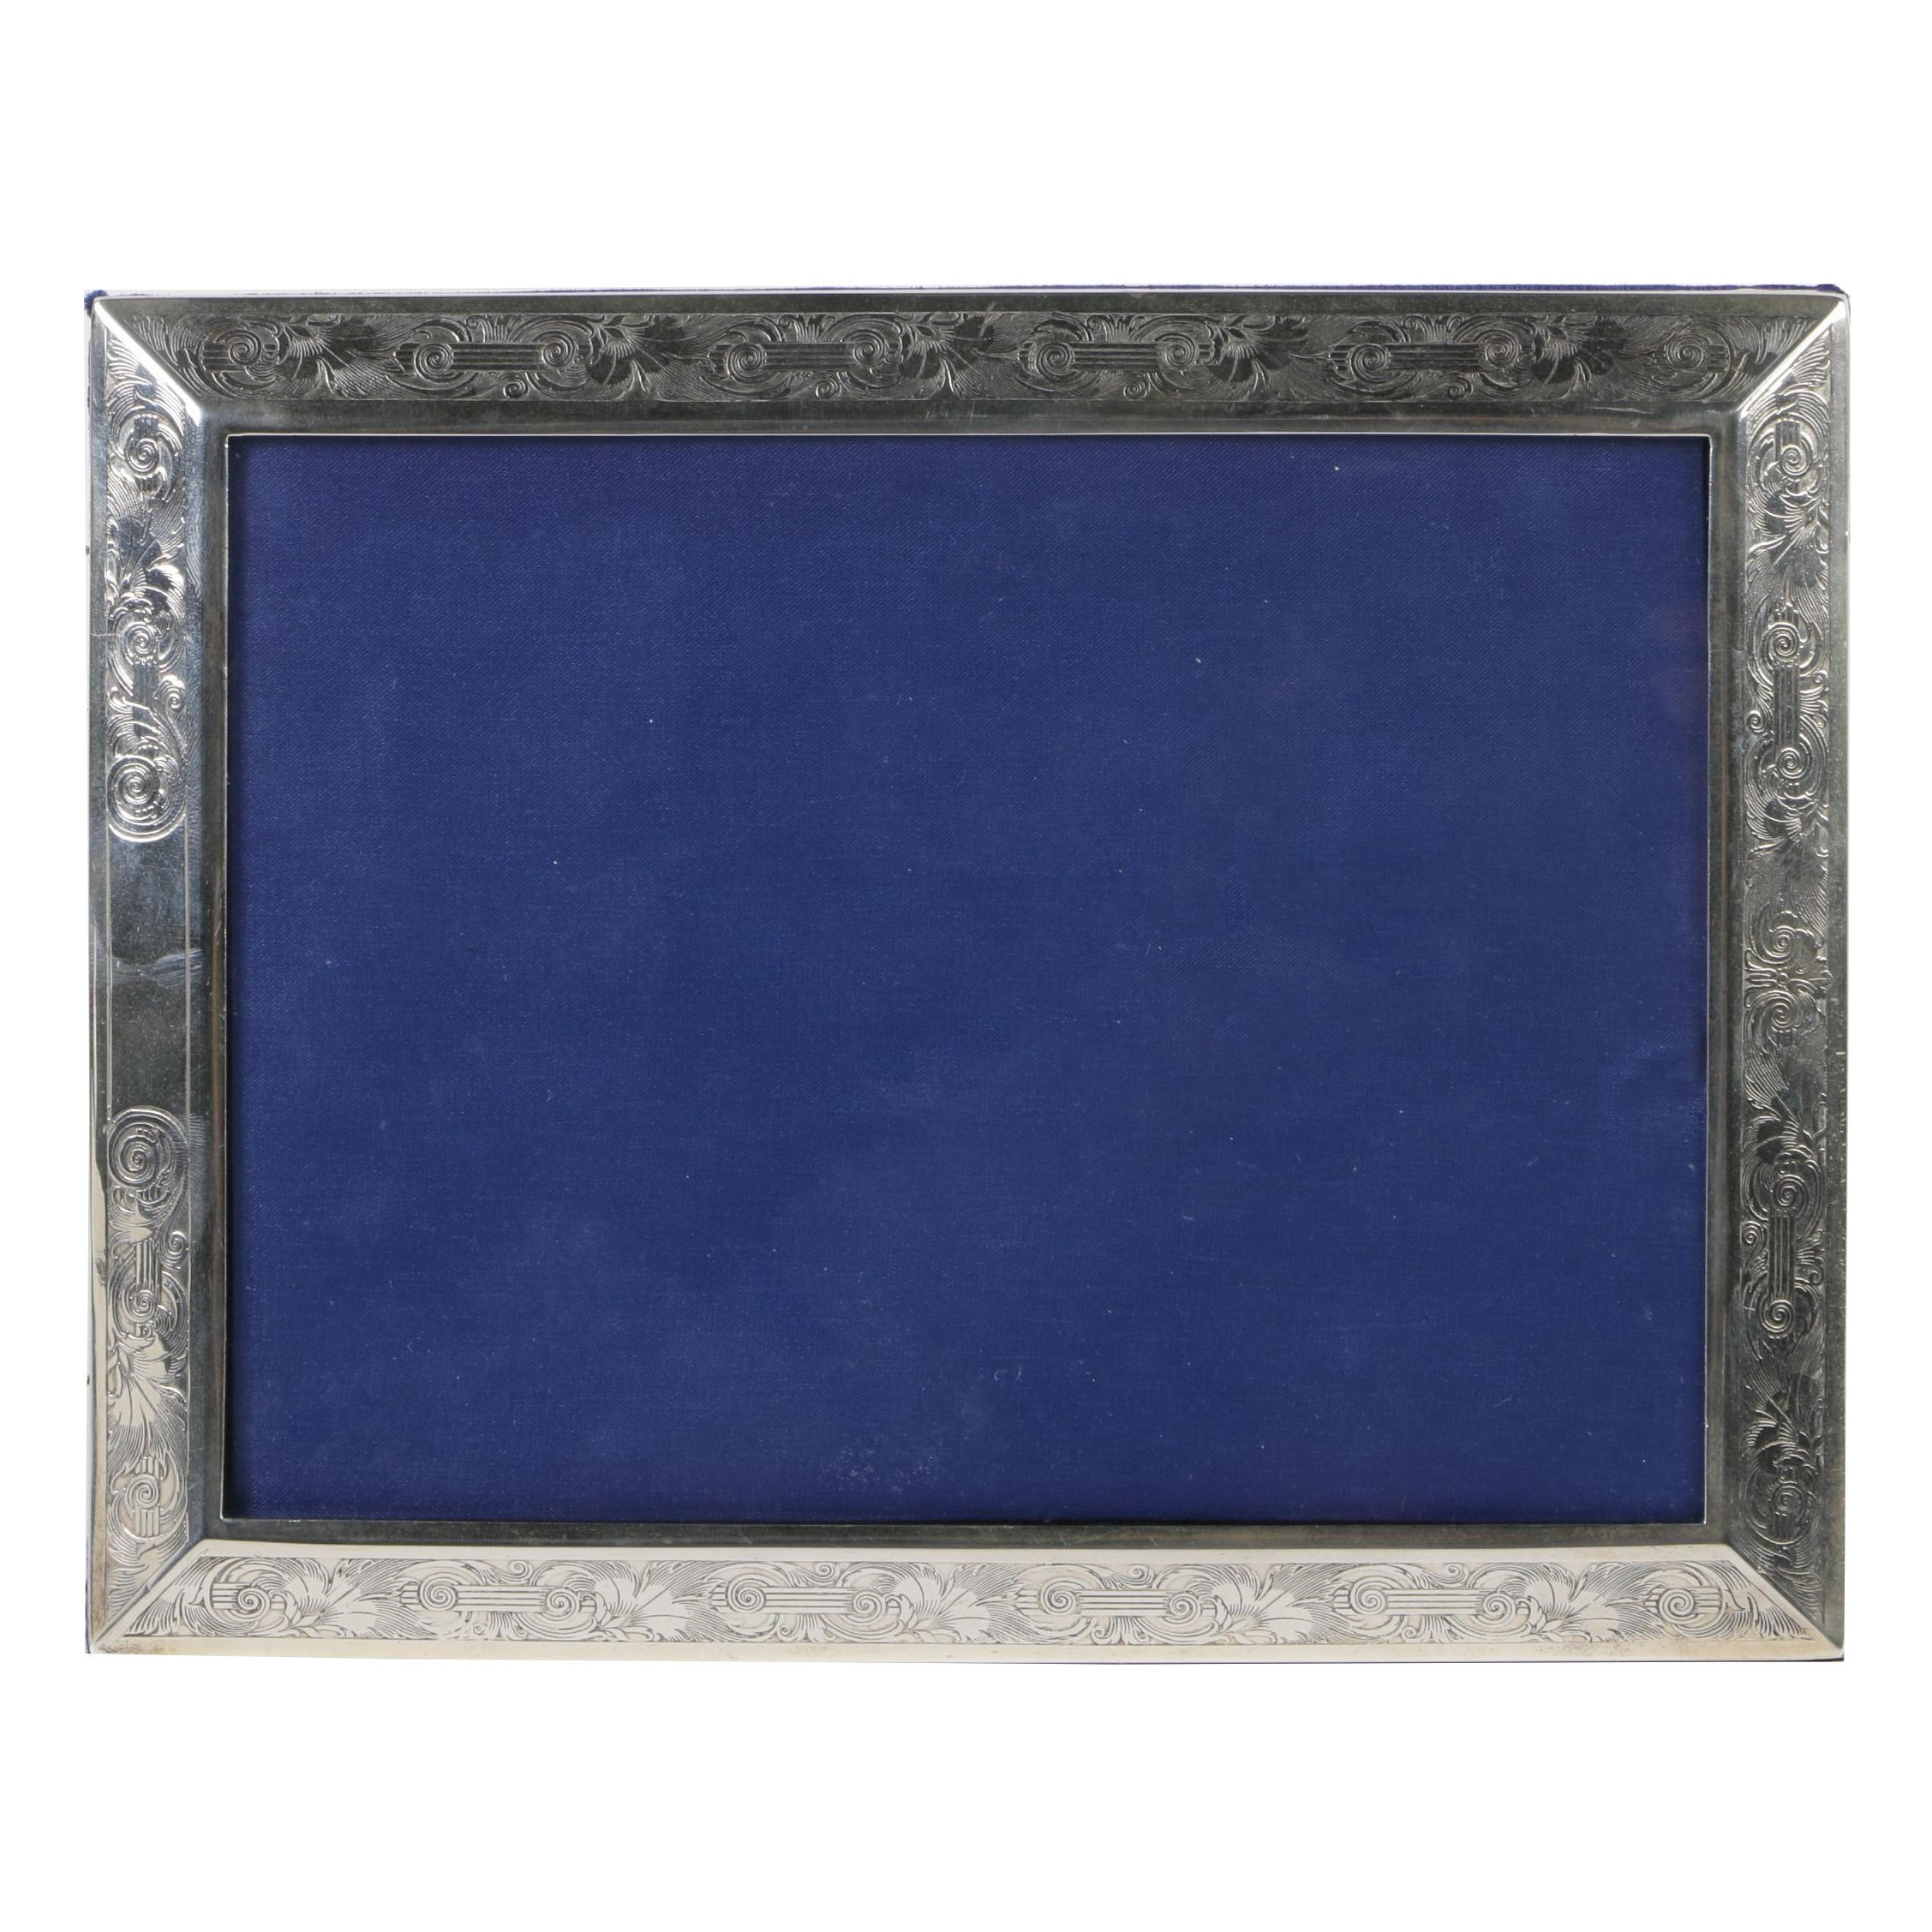 William B. Kerr & Co. Sterling Silver Picture Frame, Early 20th Century